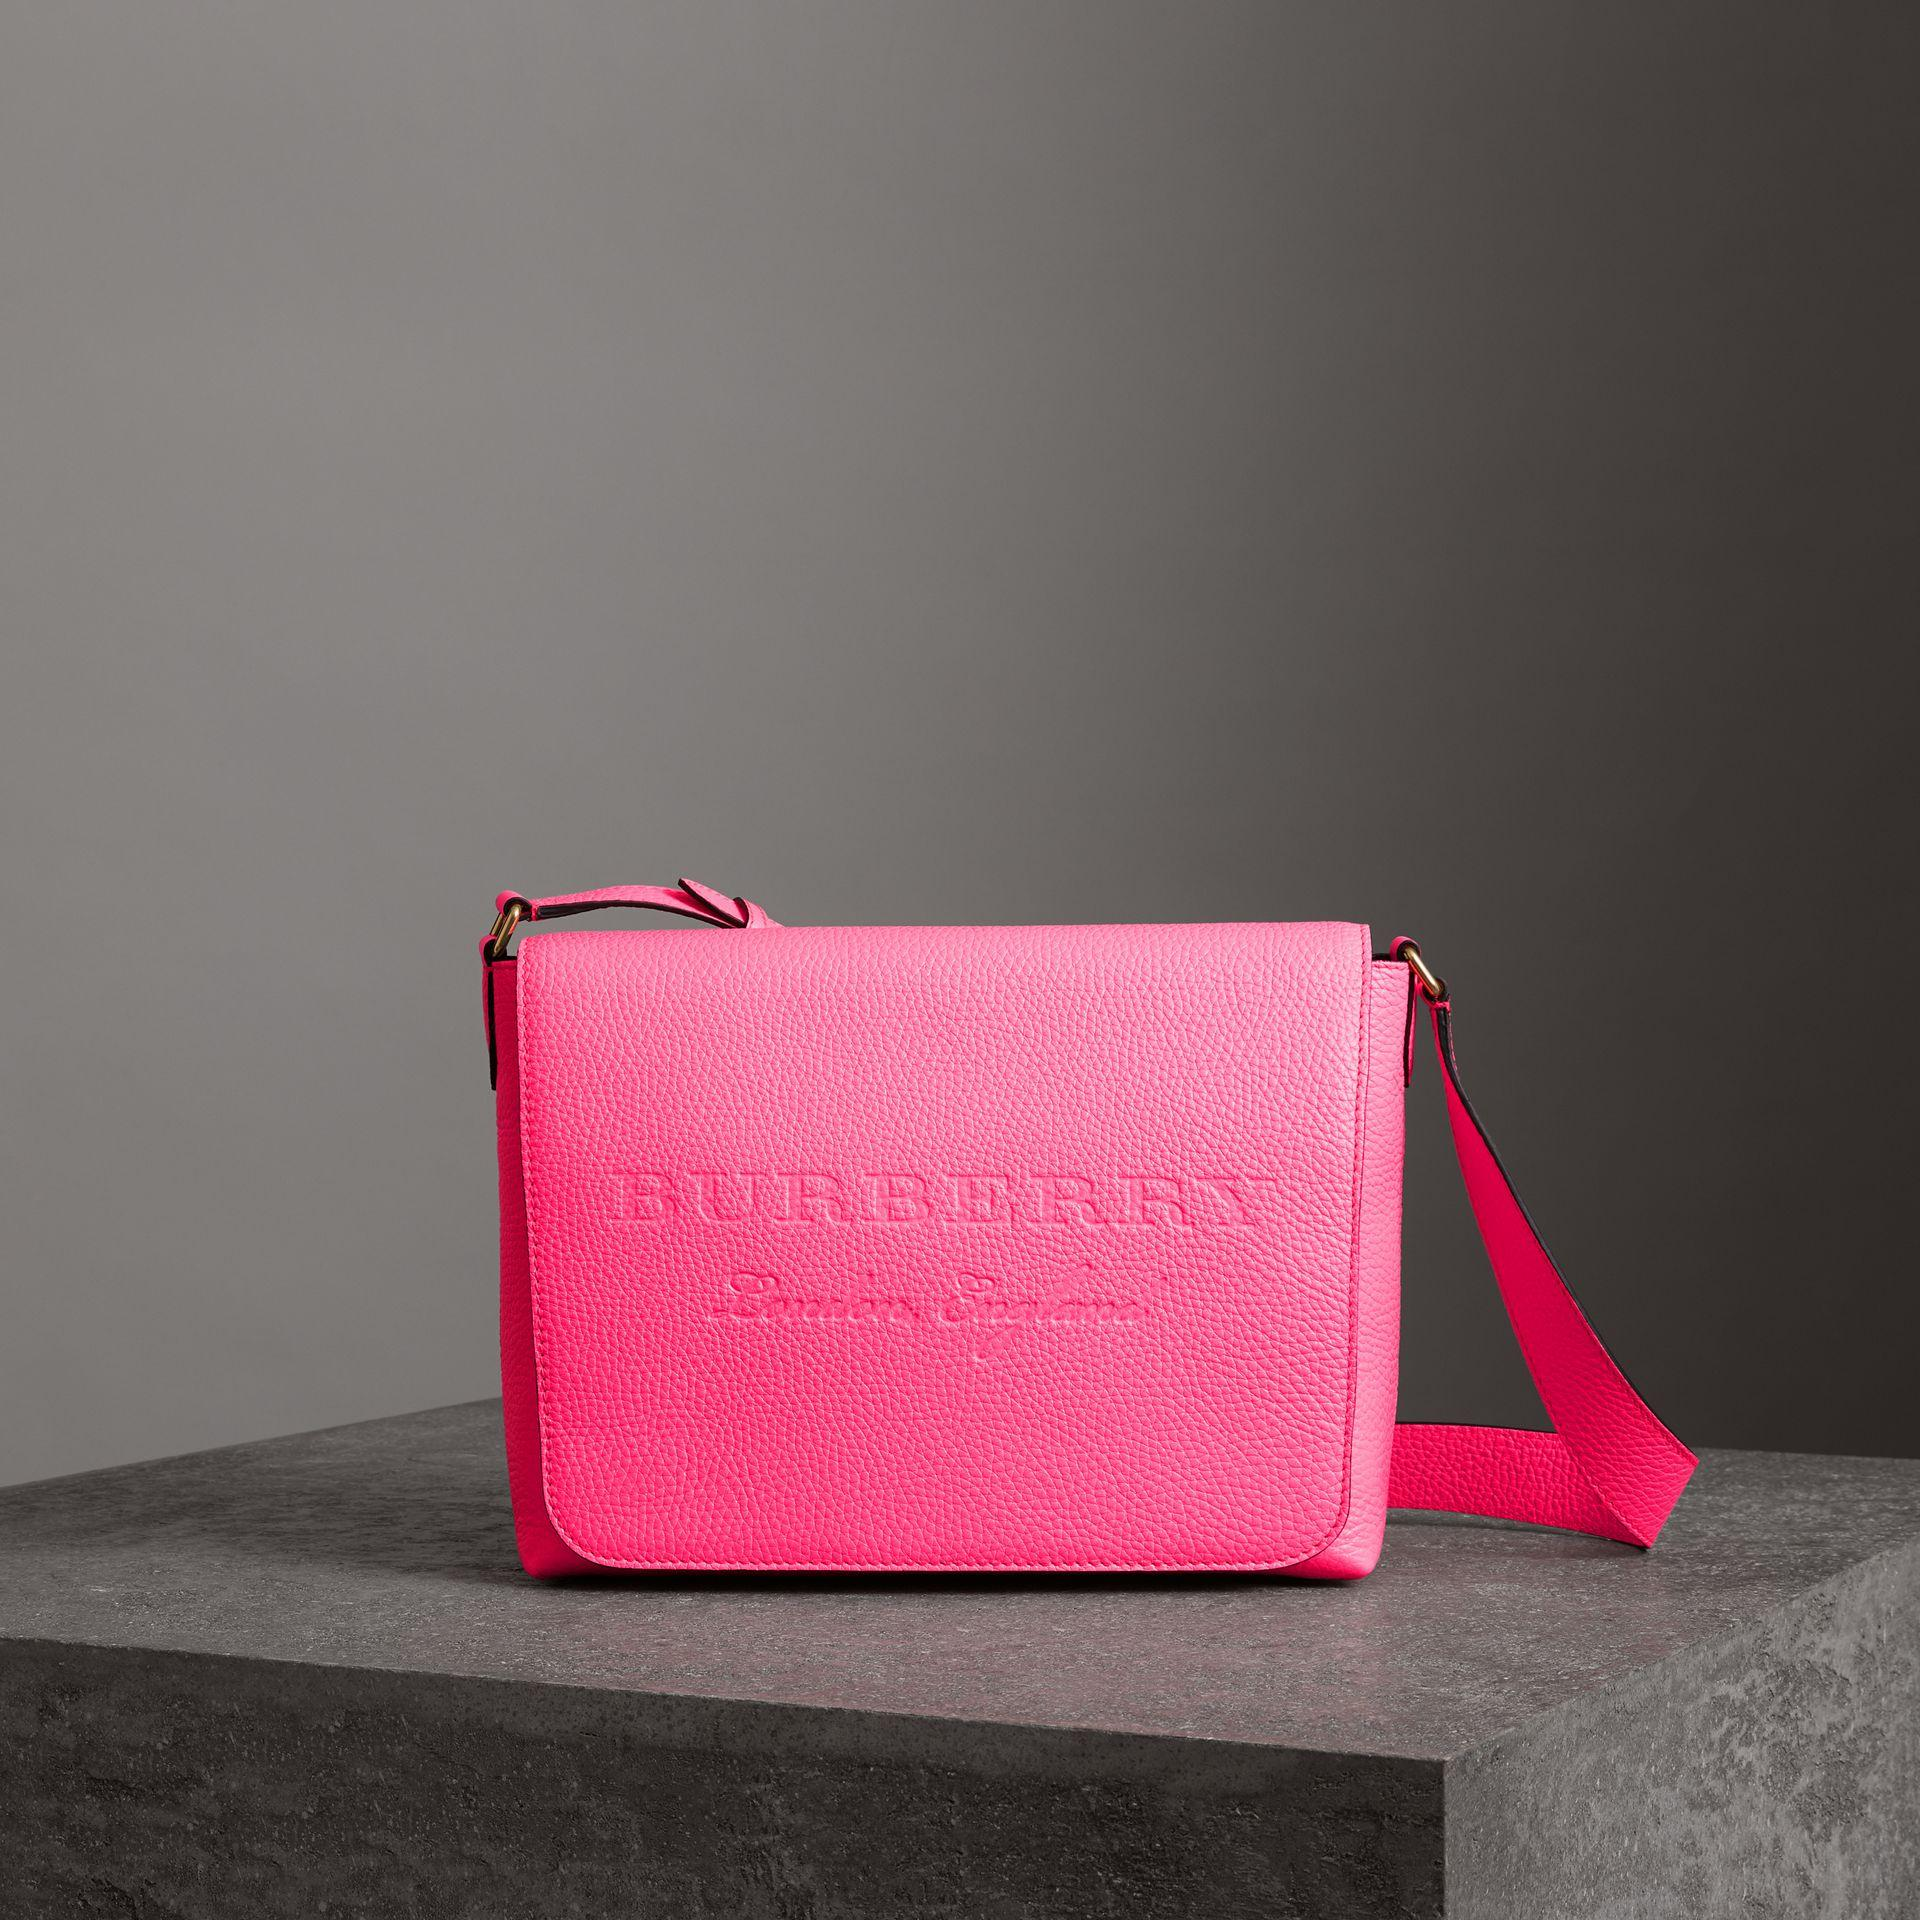 177c2887b053 Burberry Medium Embossed Leather Messenger Bag In Neon Pink